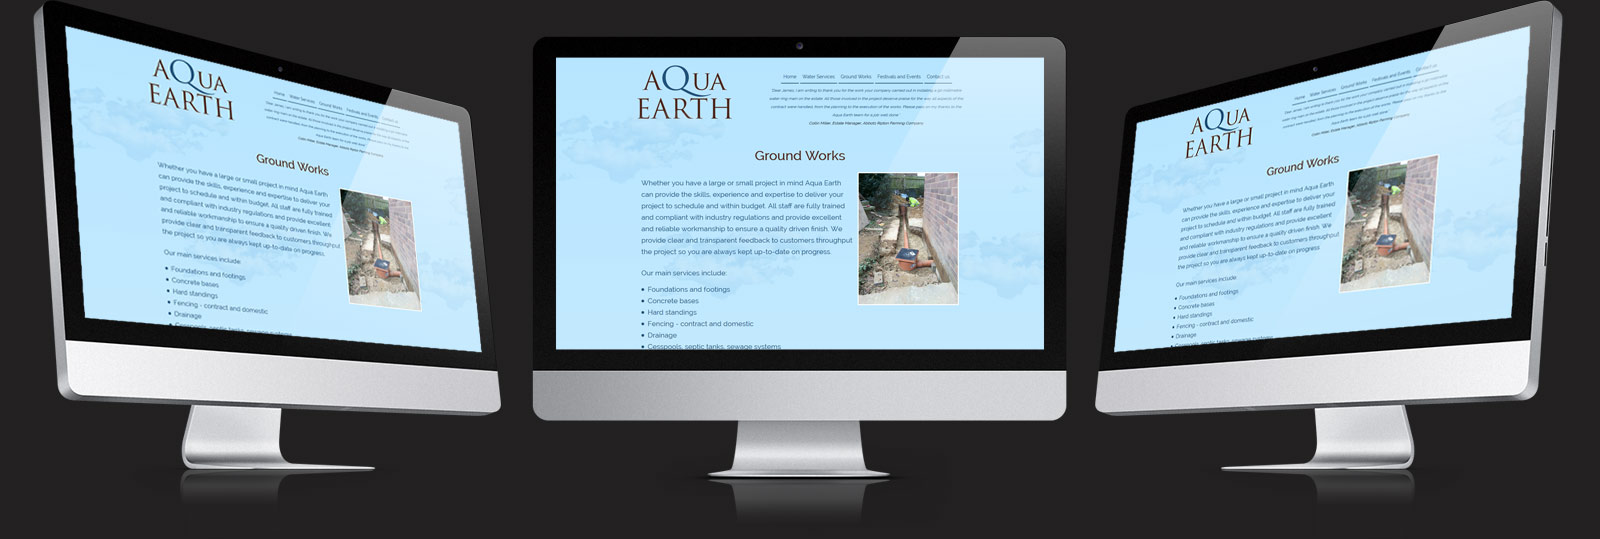 Stamford Web Design - Aqua Earth